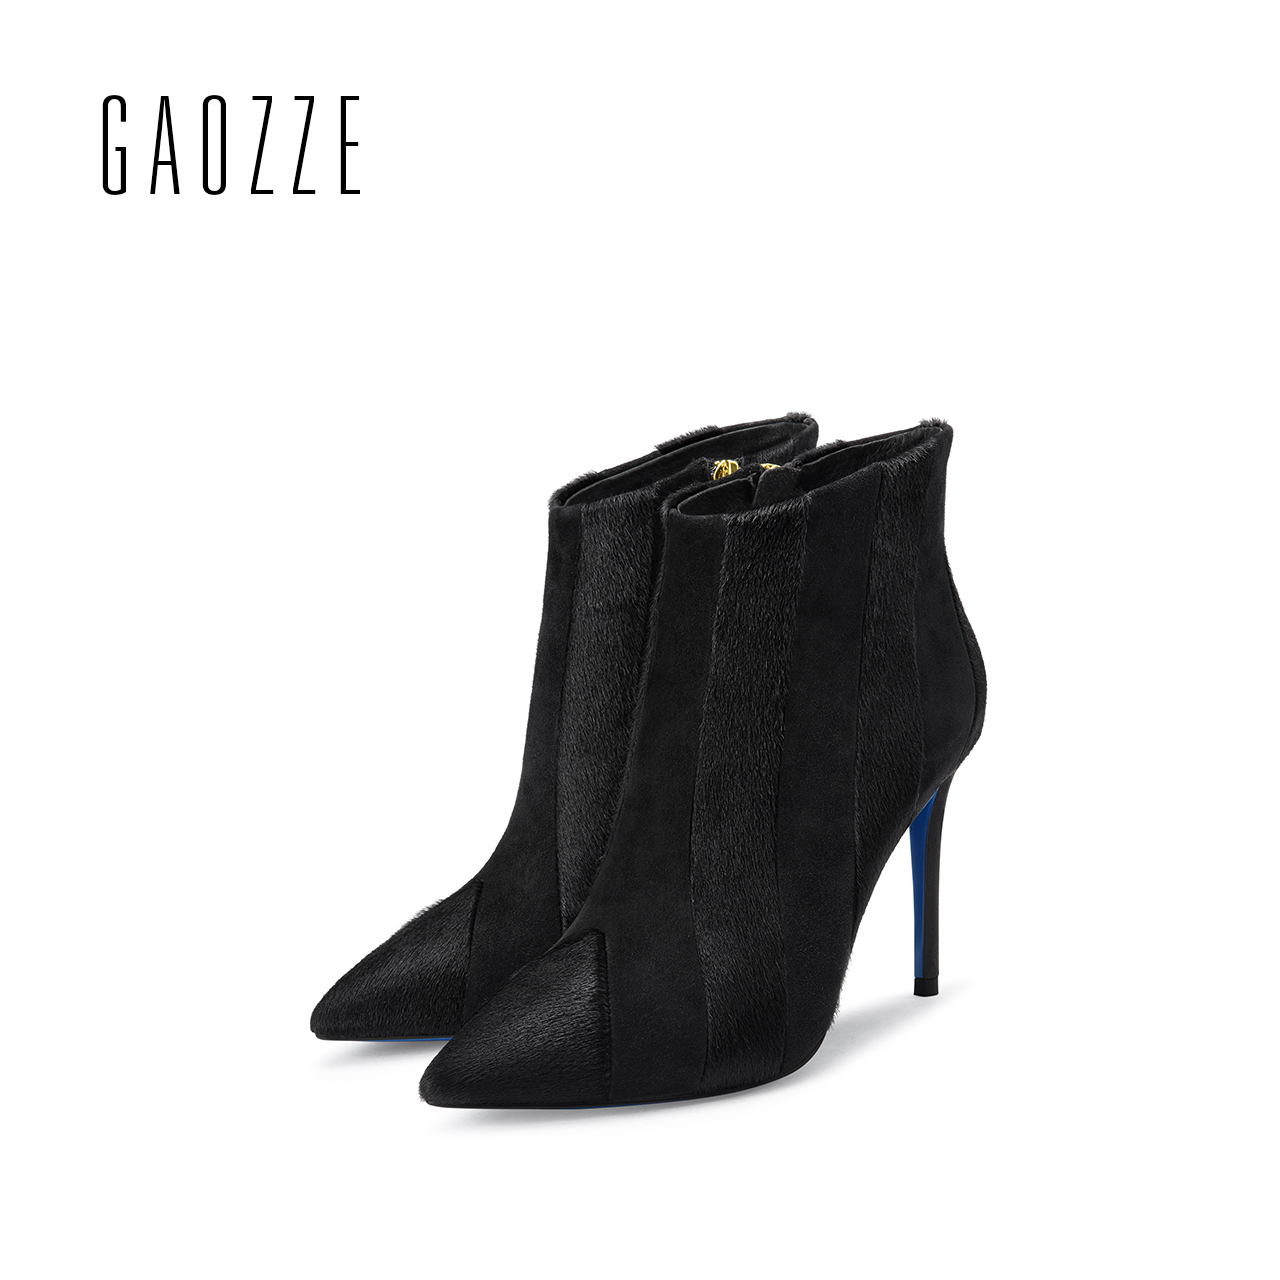 GAOZZE genuine leather boots women pointed toe sexy thin high-heeled boots female side zipper women ankle boots 2017 autumn new gaozze autumn ankle boots for women 2017 new sexy thin high heeled boots women side zipper fashion pointed toe shoes red boots